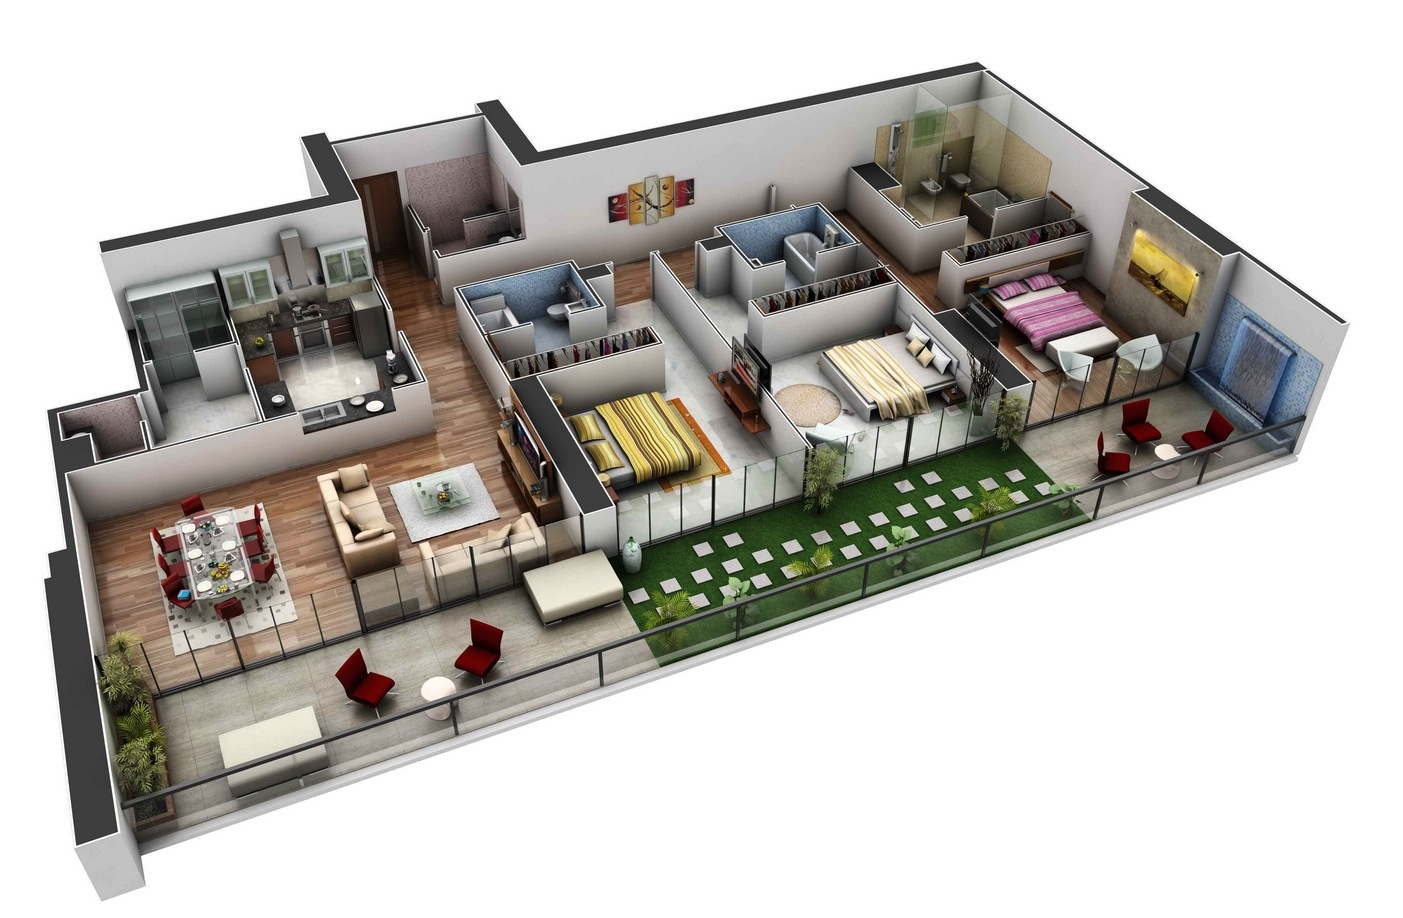 3-spacious-3-bedroom-house-plans.jpeg